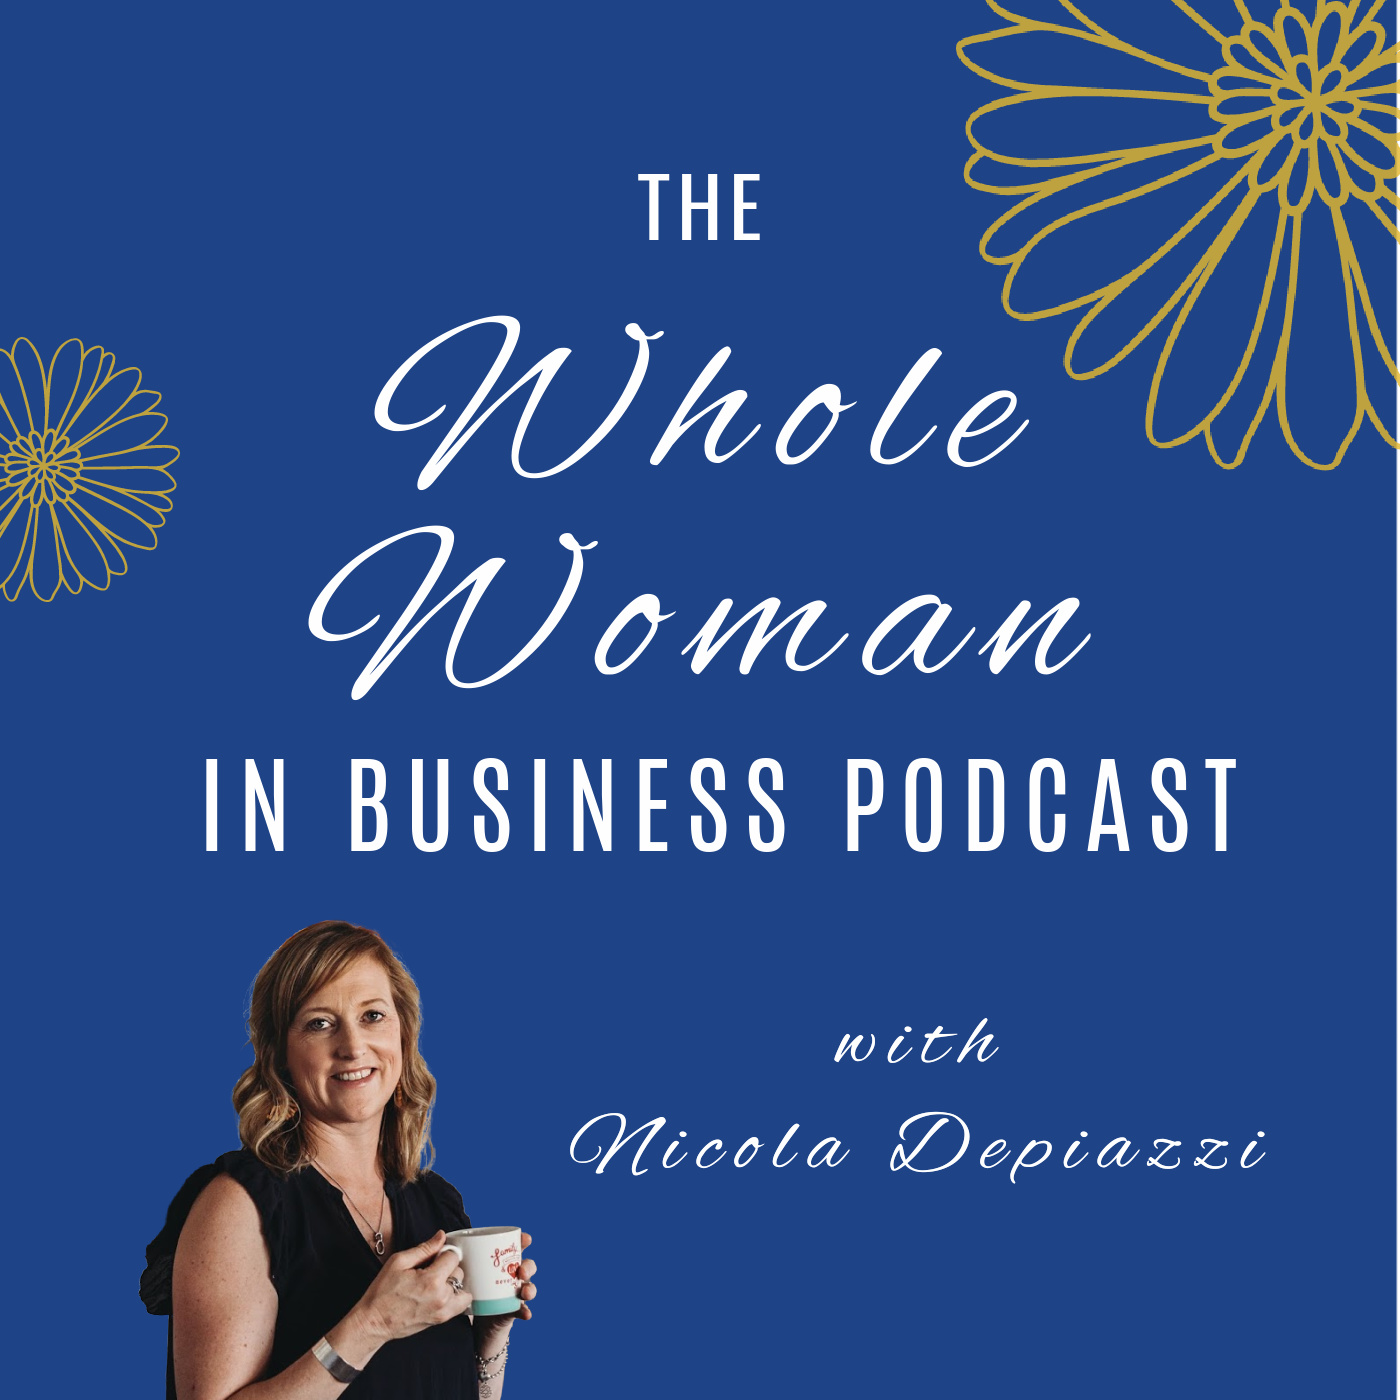 Whole Woman in Business Podcast show art